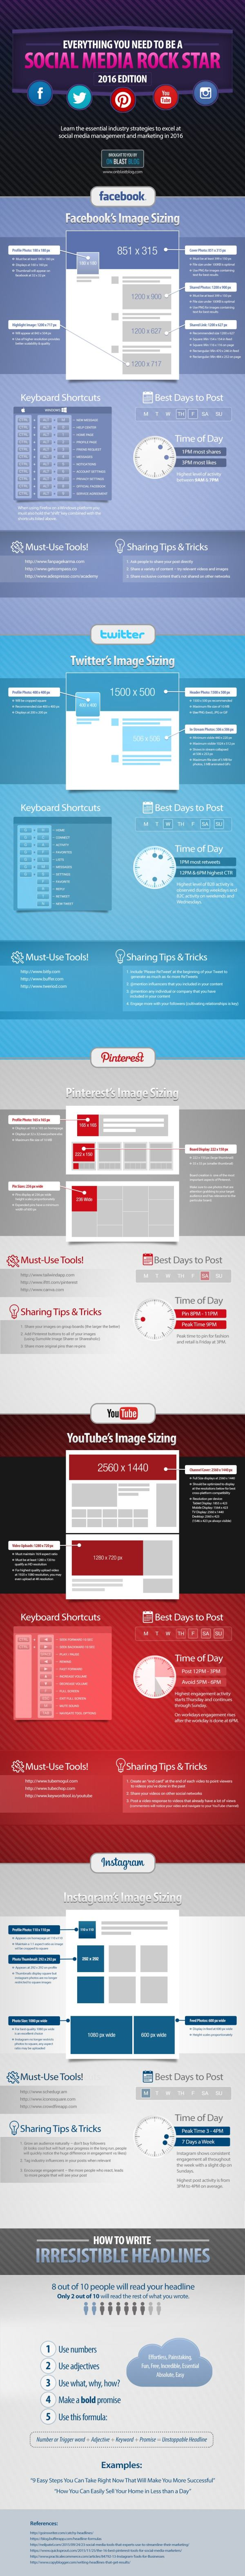 How to Optimize Your Social Media Posts (Infographic)